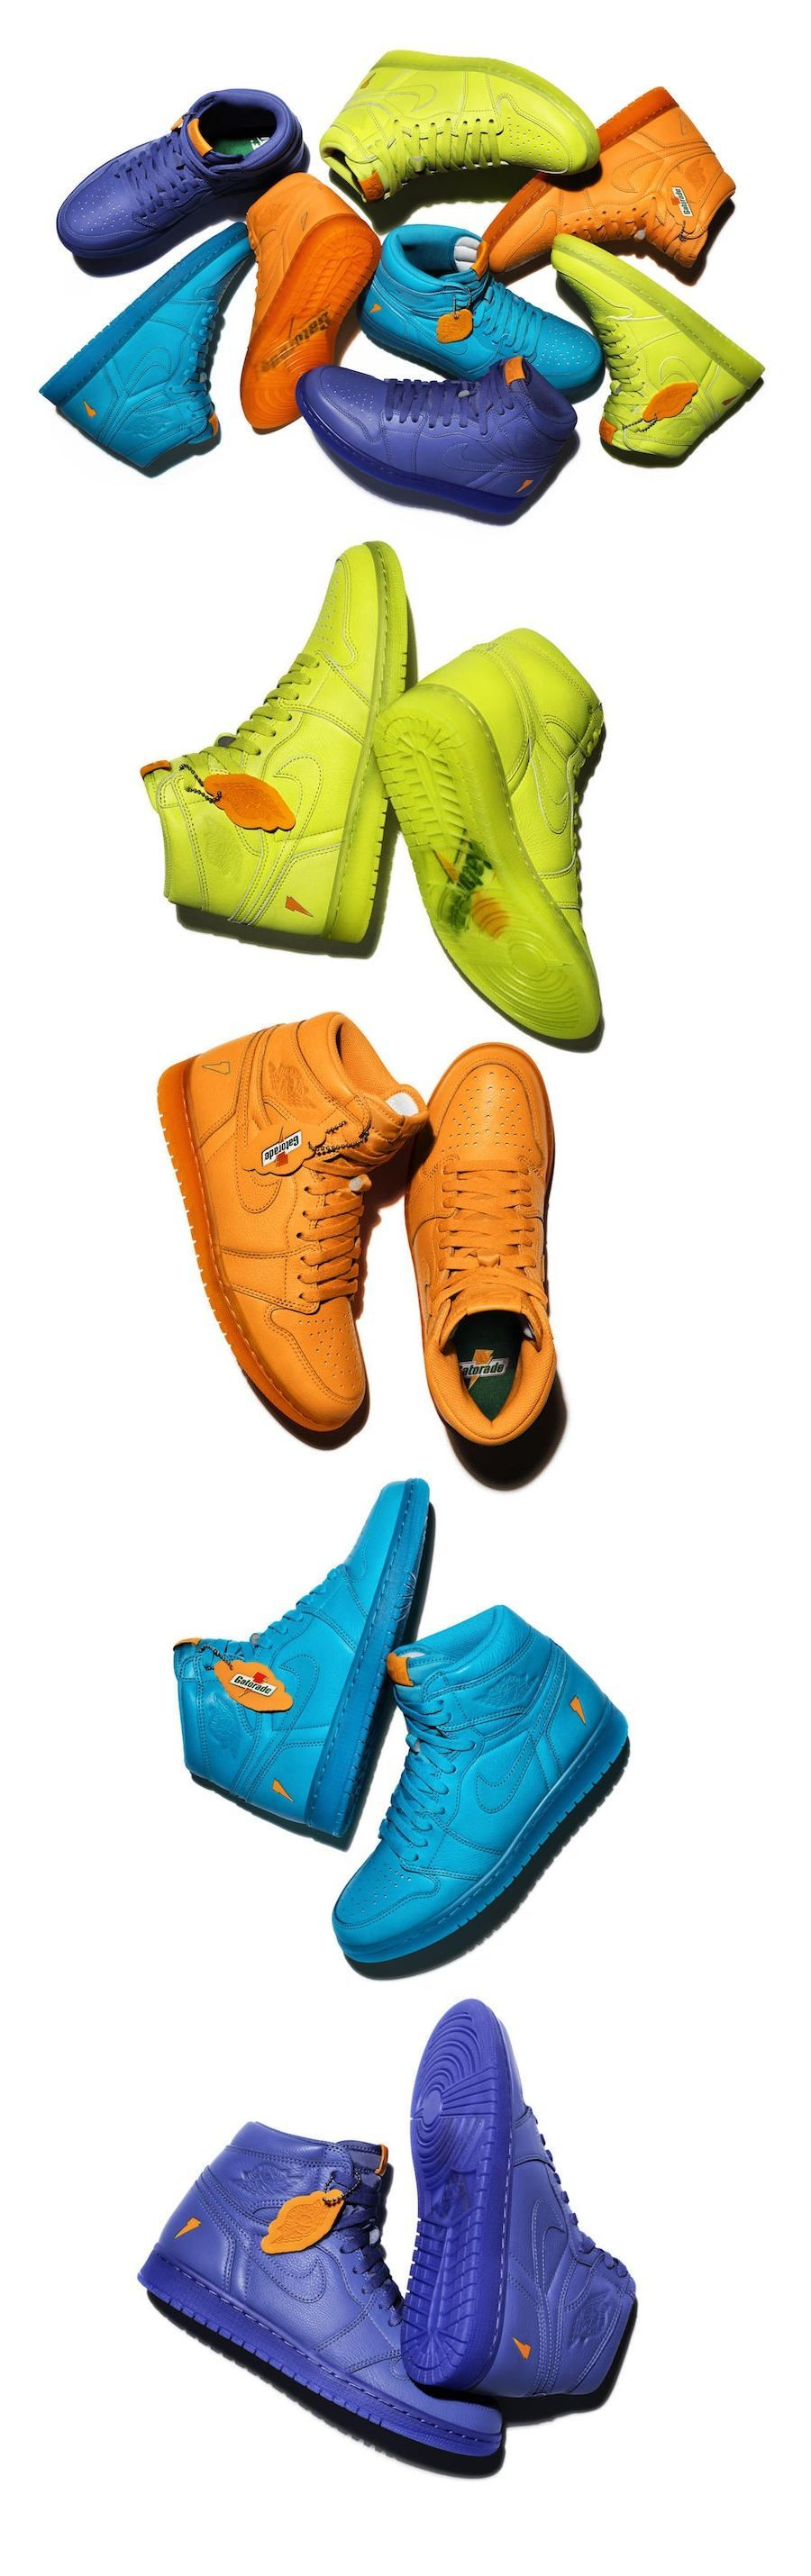 9ce65698d009 Sneaker Review  Air Jordan 1 Retro Gatorade Pack – Purchase Links  Gatorade   AirJordan  JordanBrand